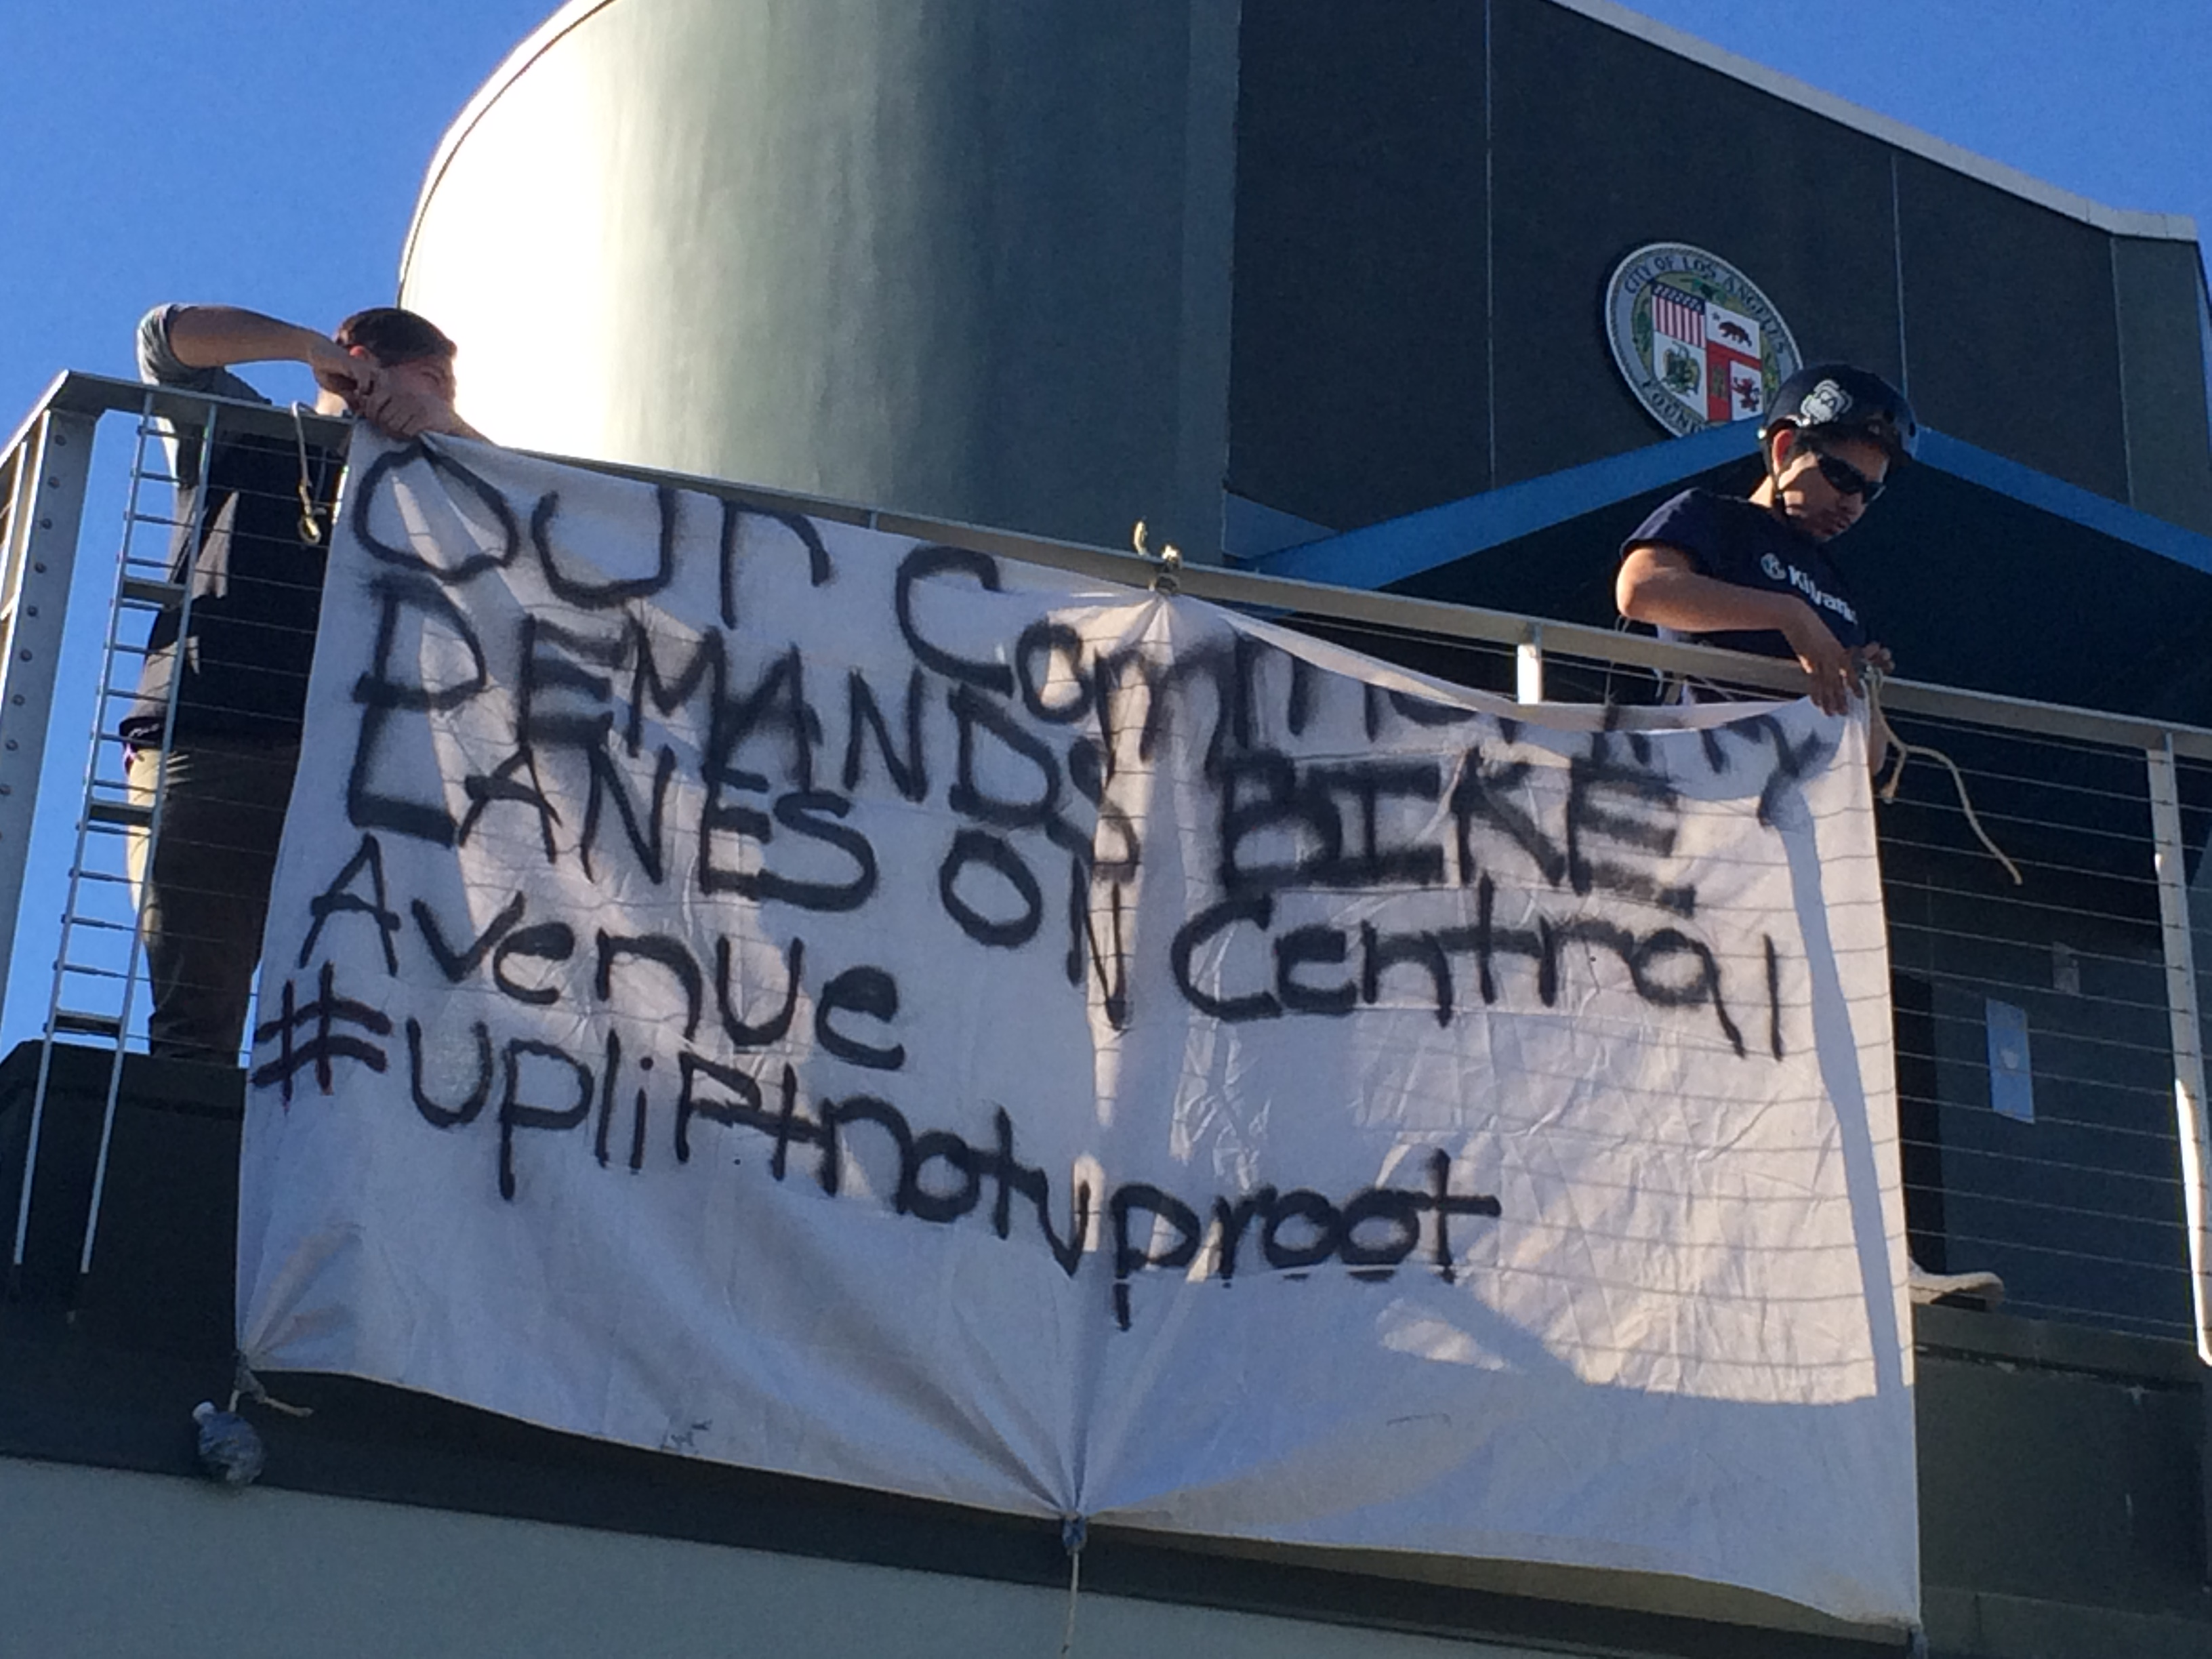 Members of TRUST South L.A. hang a banner from Curren Price's constituent center. Photo: Ashley Hansack